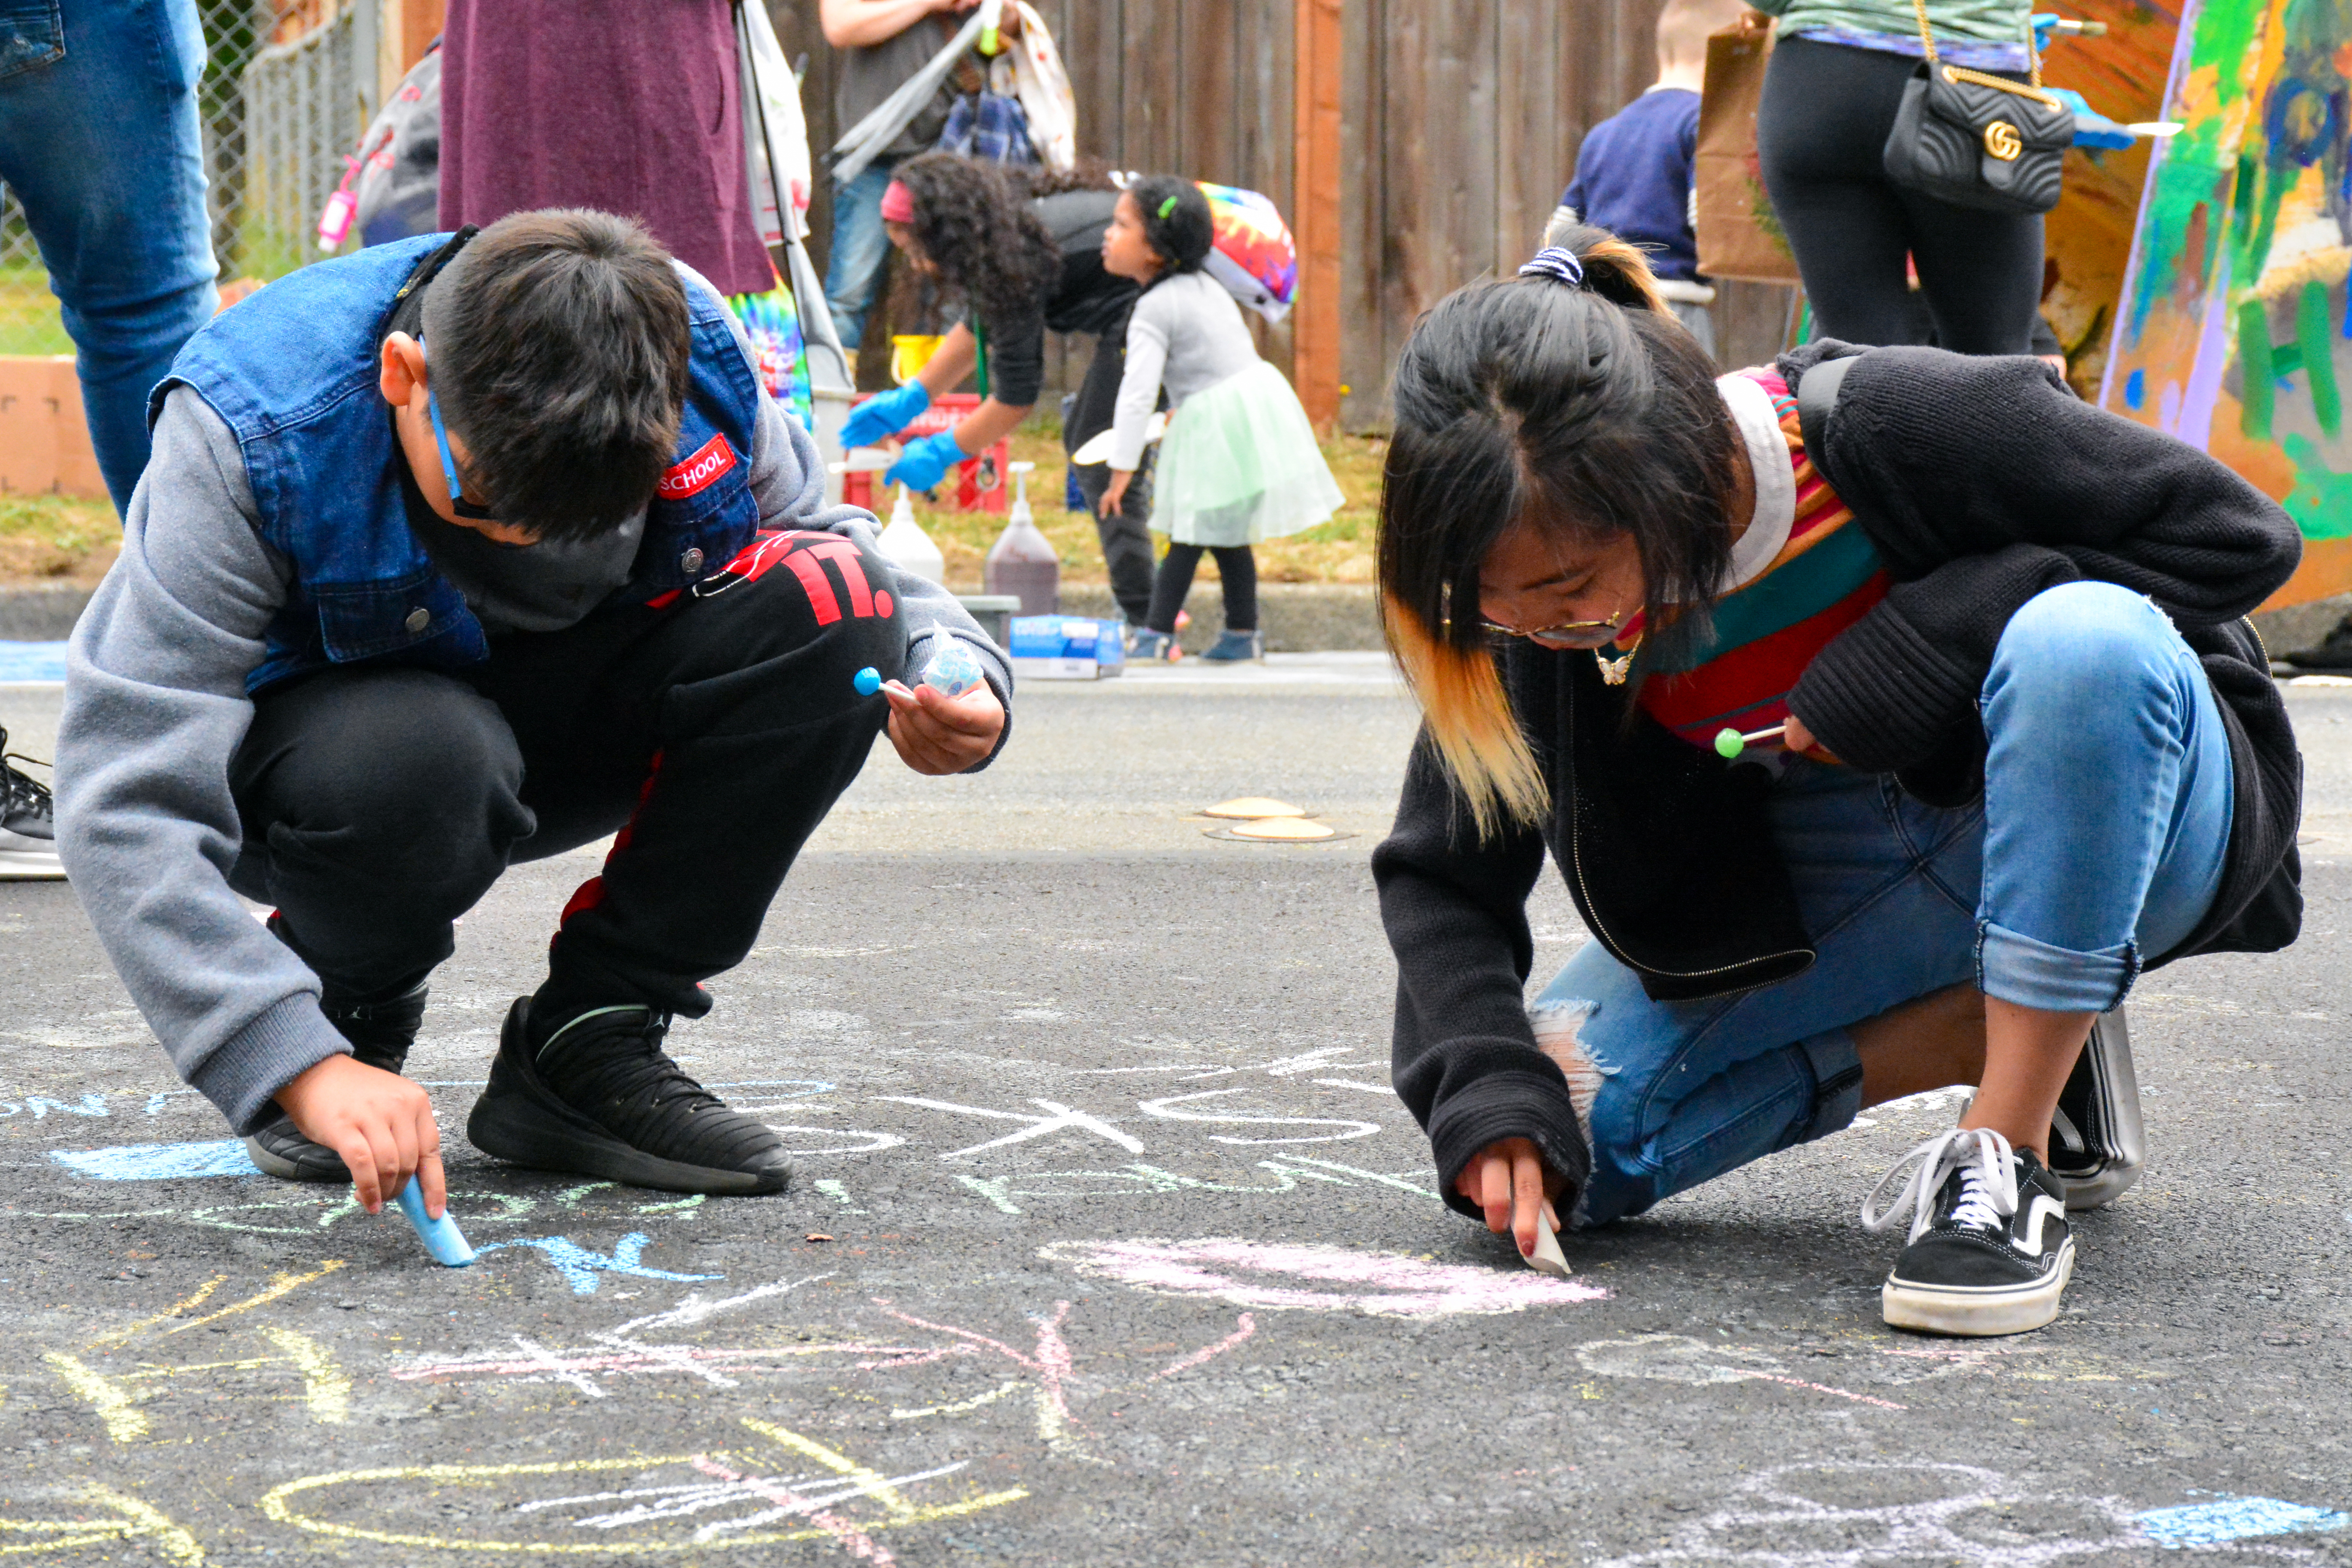 Kids create art with chalk on asphalt